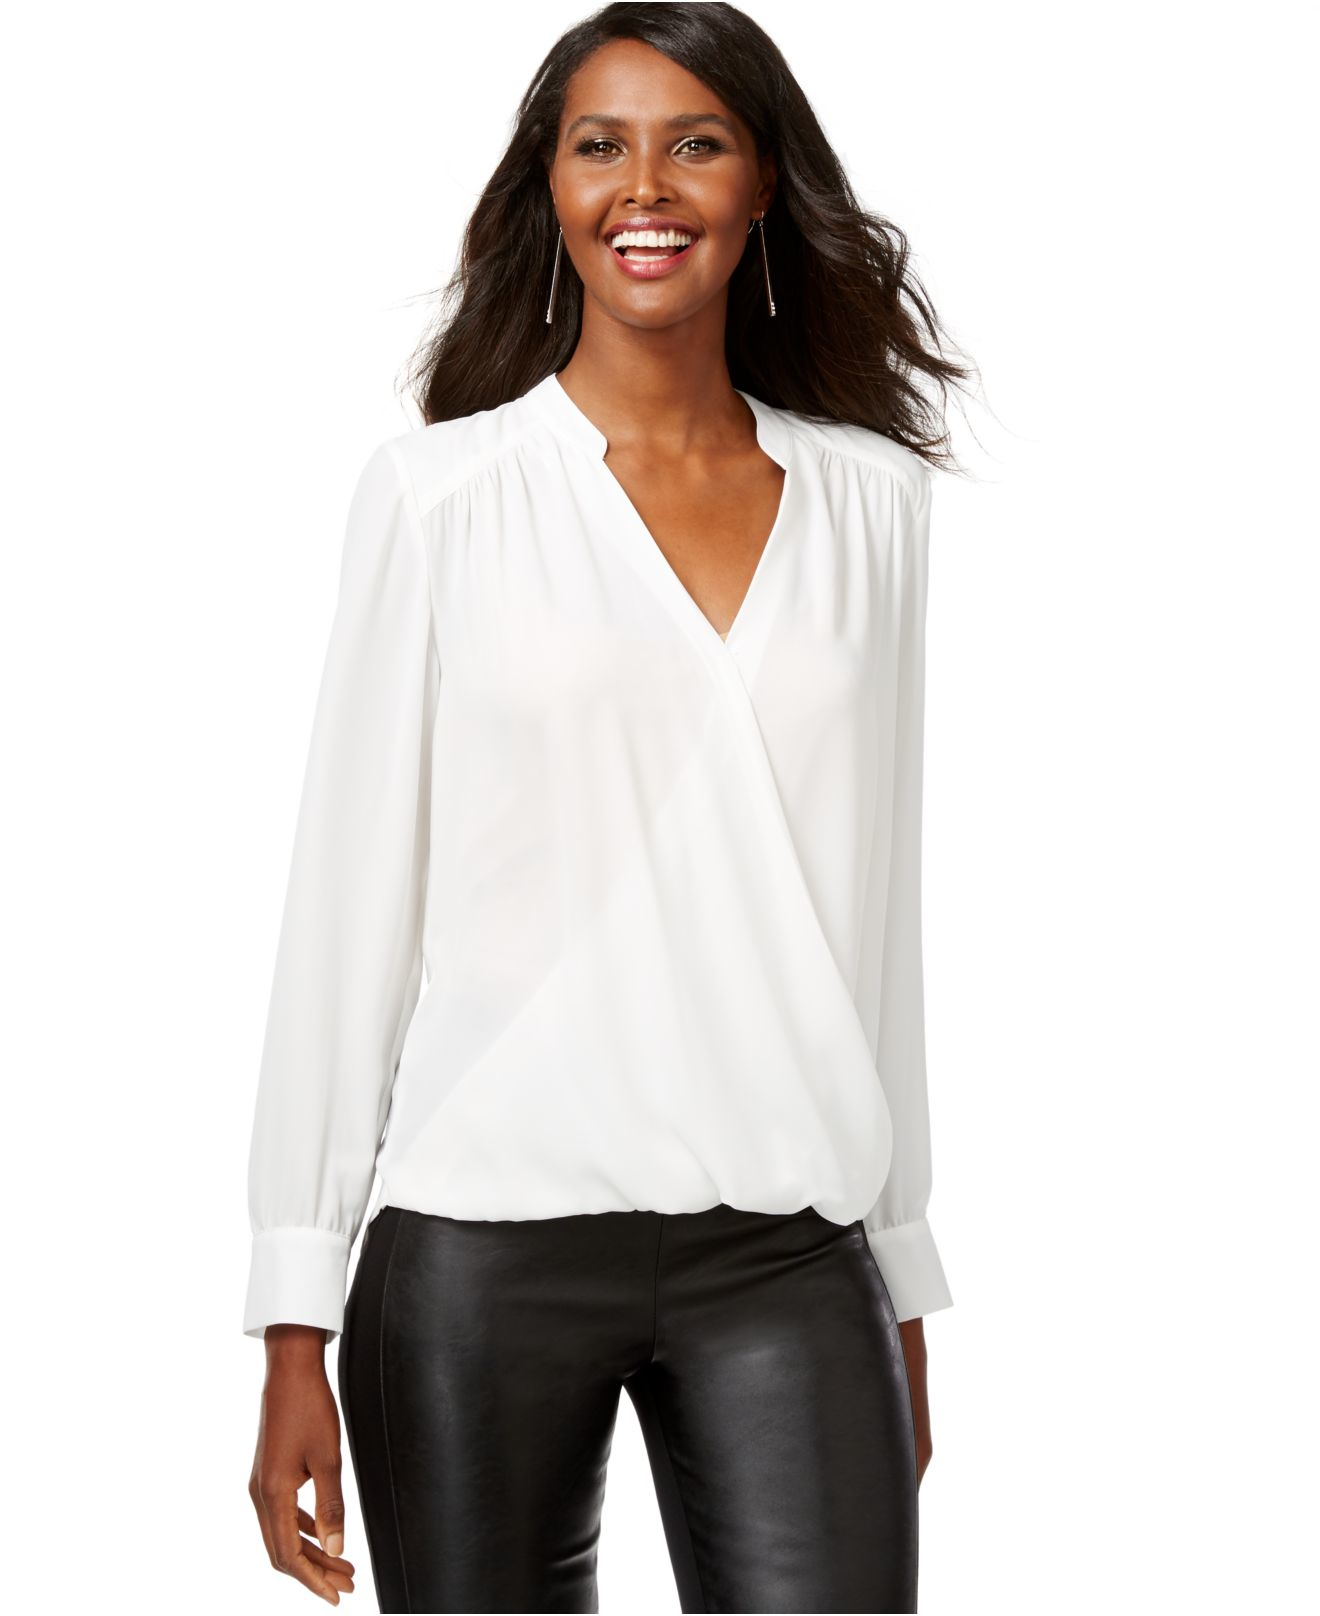 Macys Womens Tops And Blouses 30